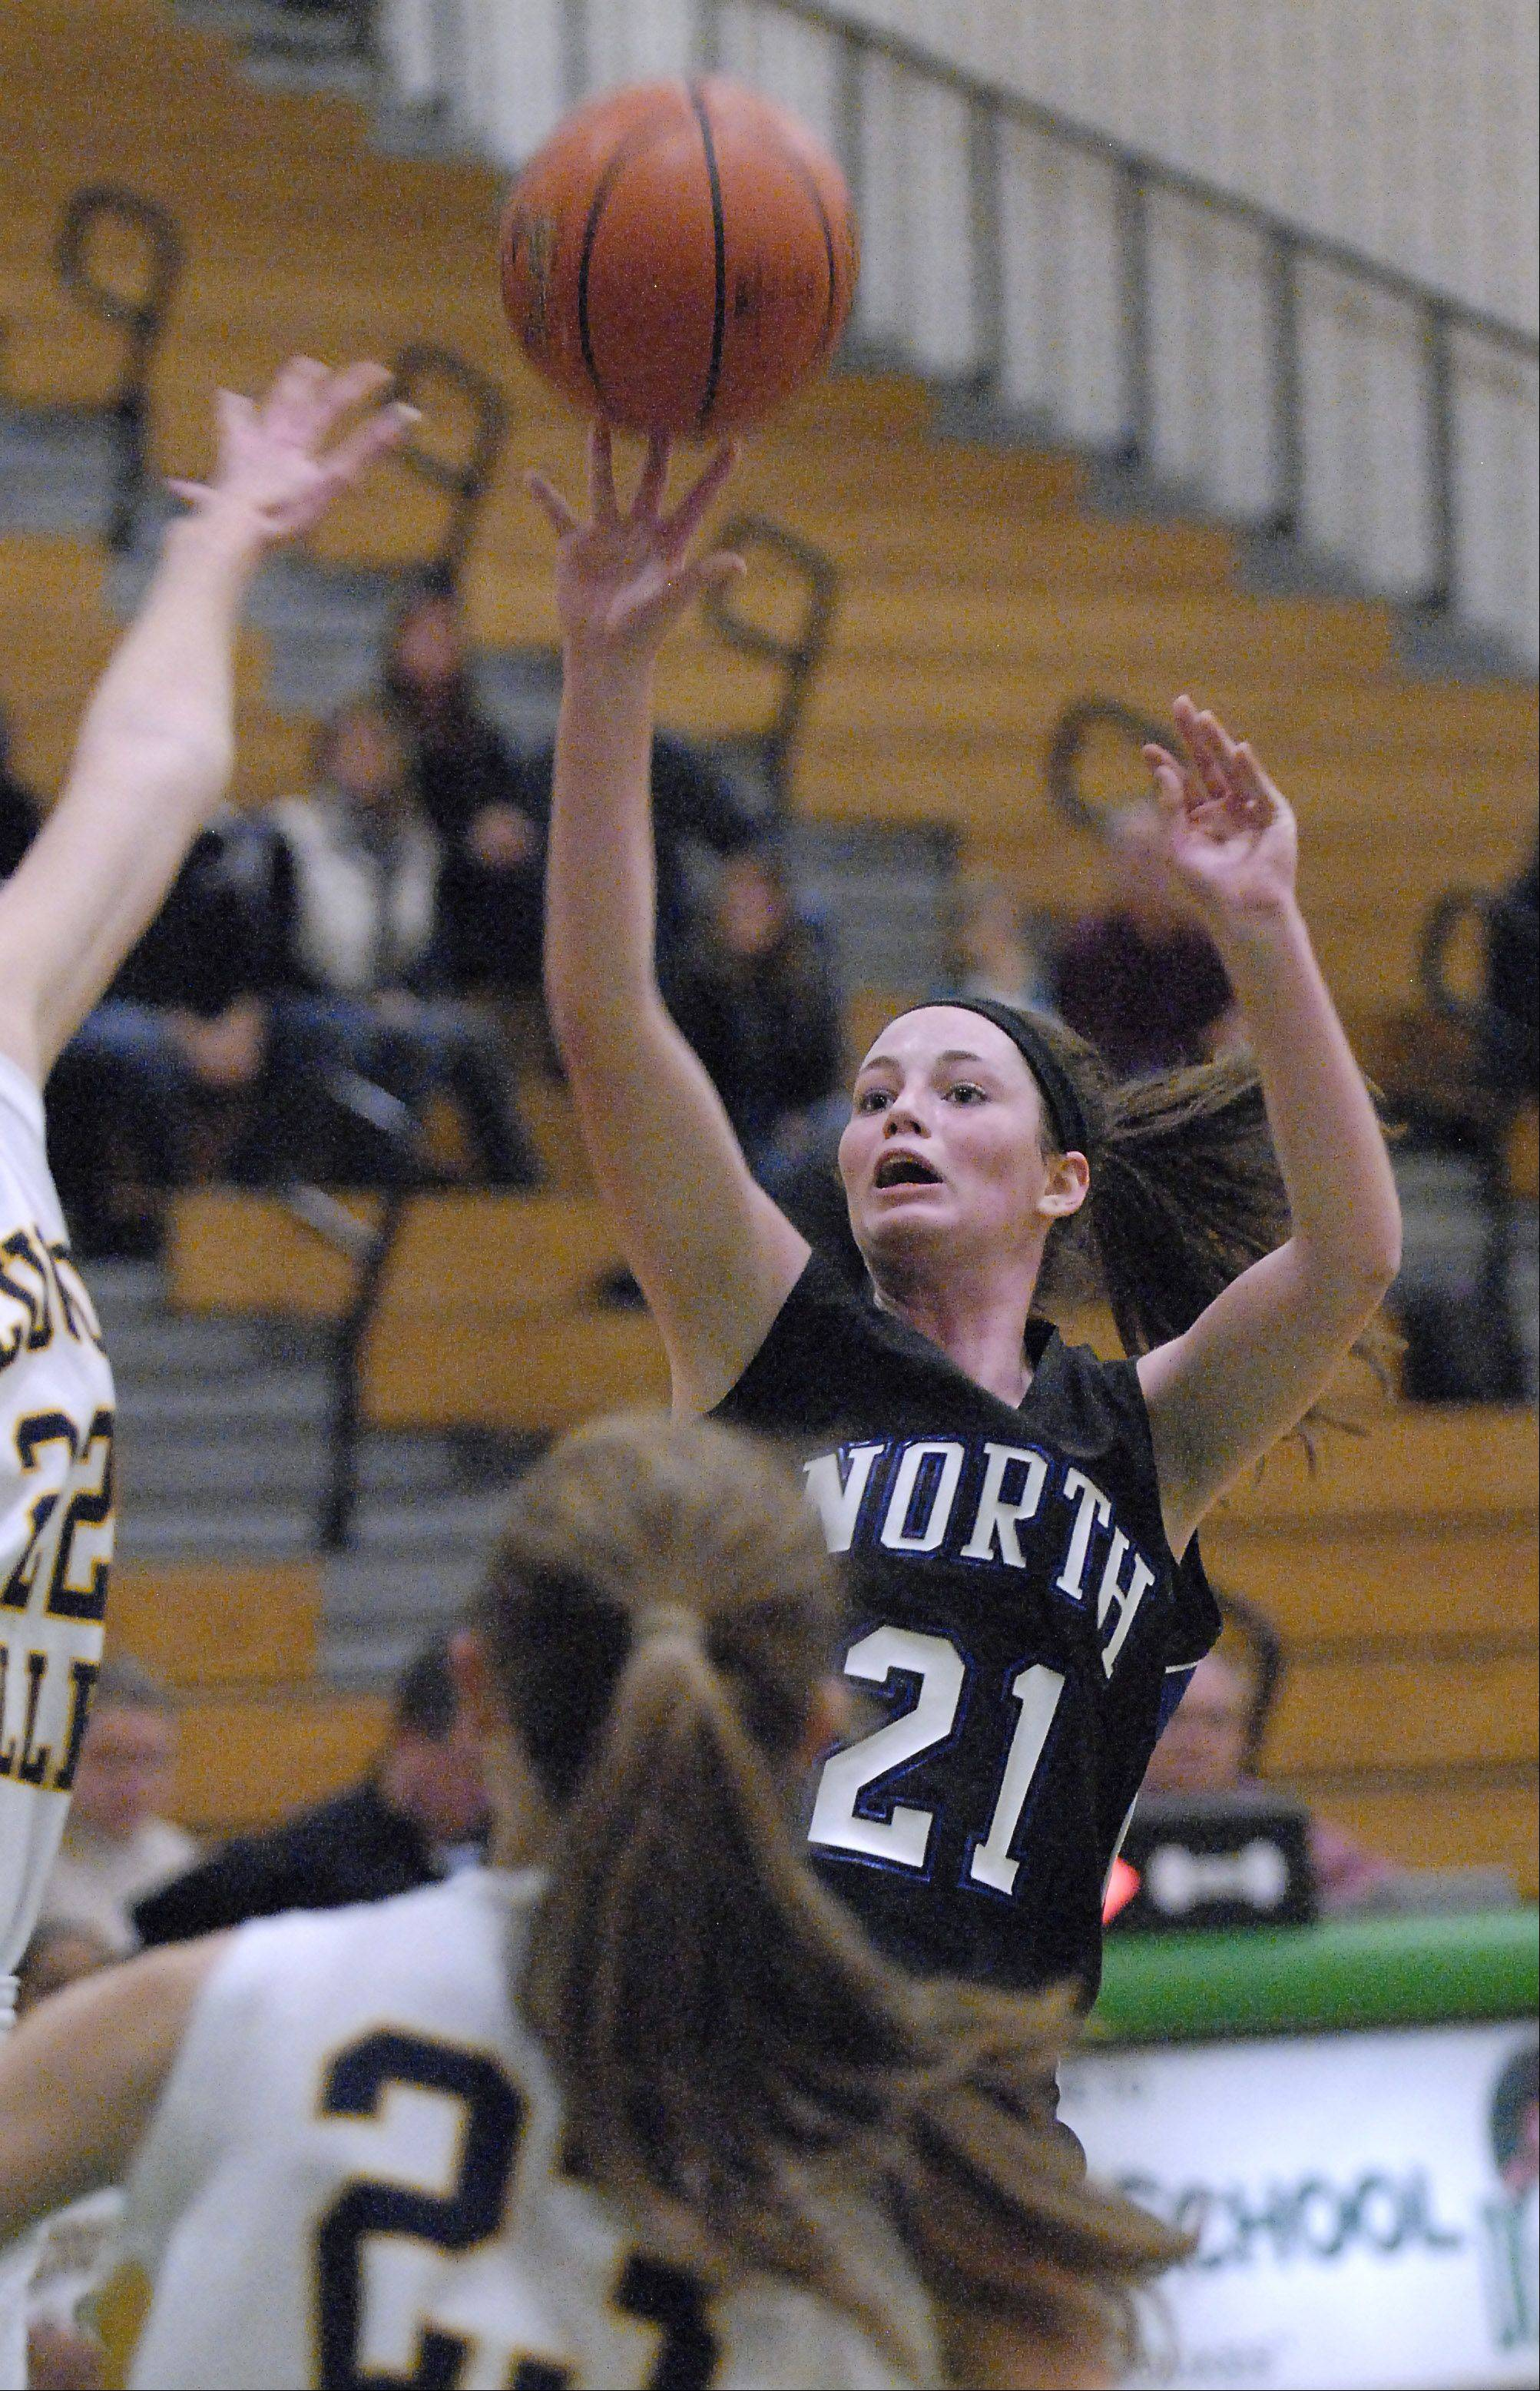 St. Charles North's Alex Silverman shoots over Nequa Valley in the first quarter on Wednesday, November 14.